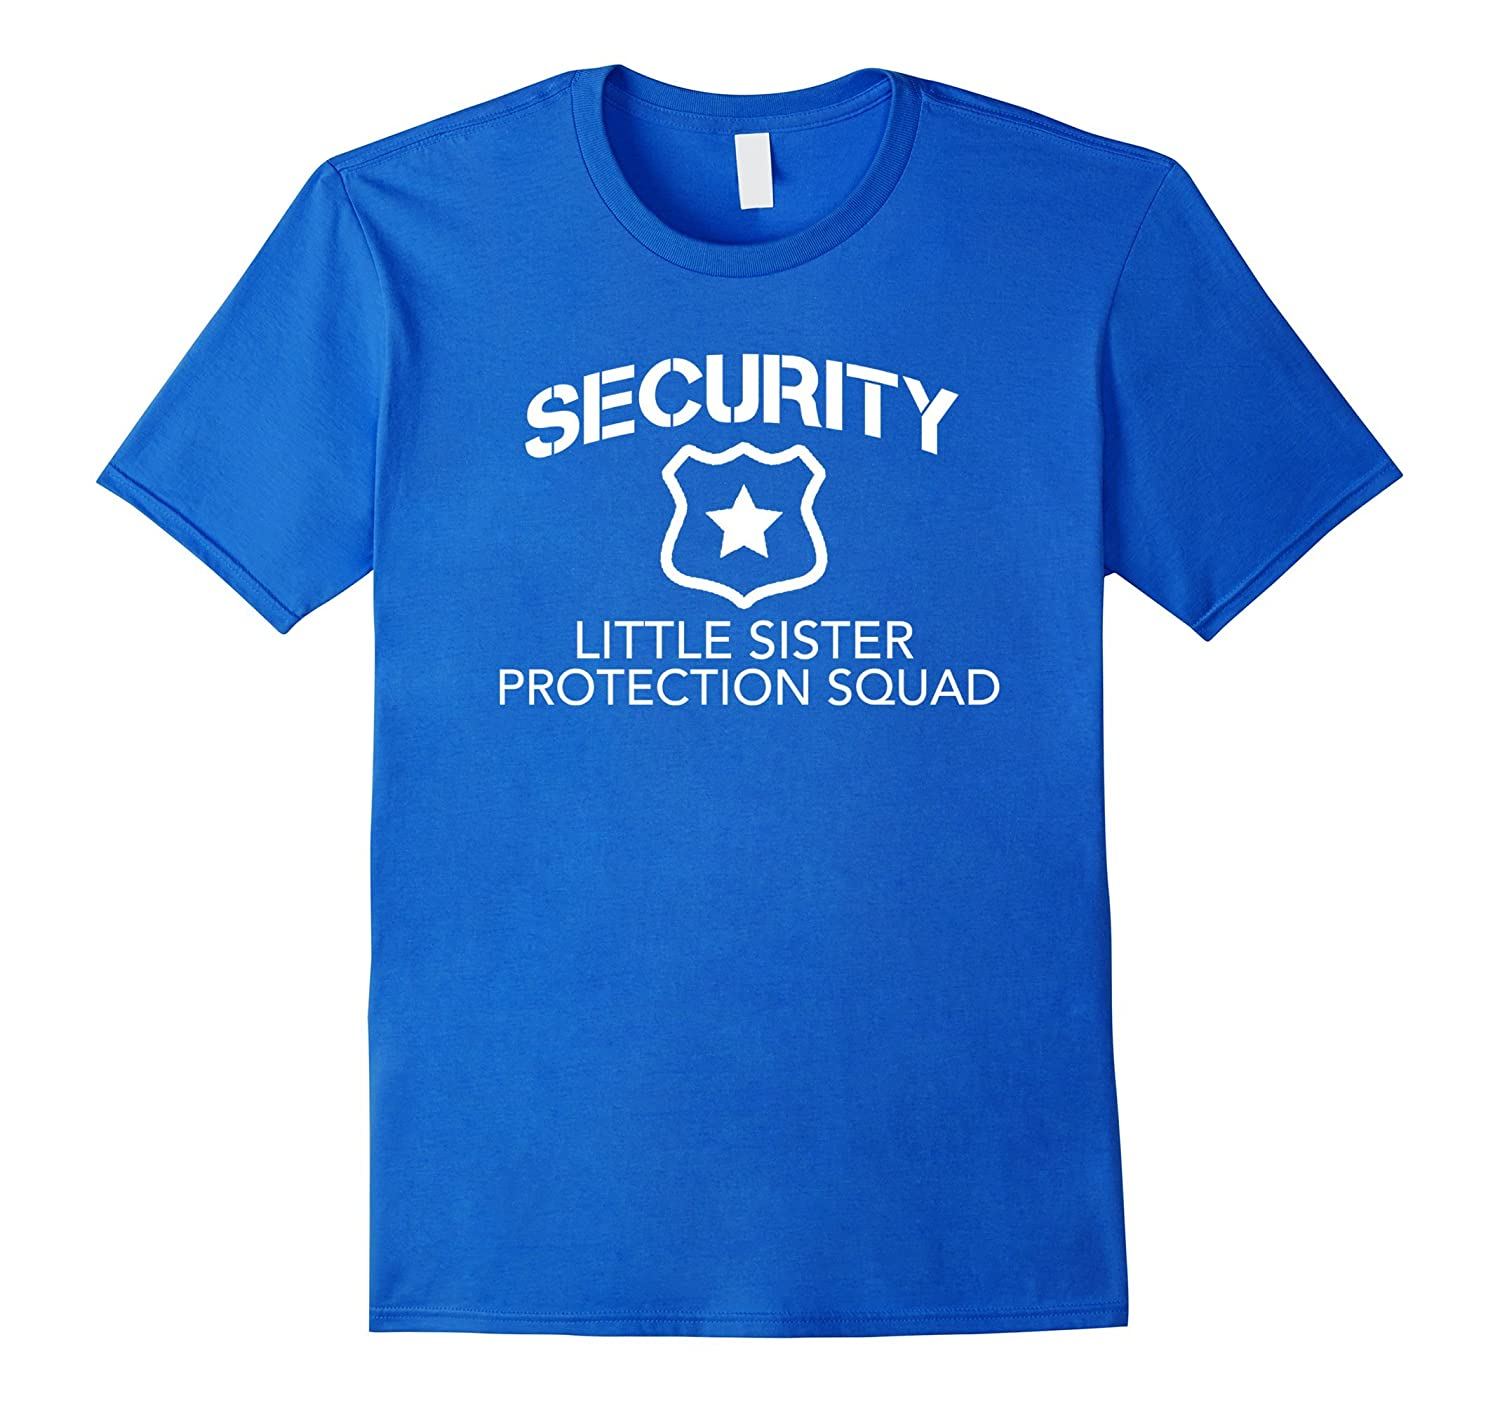 e0ae99b81e Security Little Sister Protection Squad Big Brother Shirt-RT ...